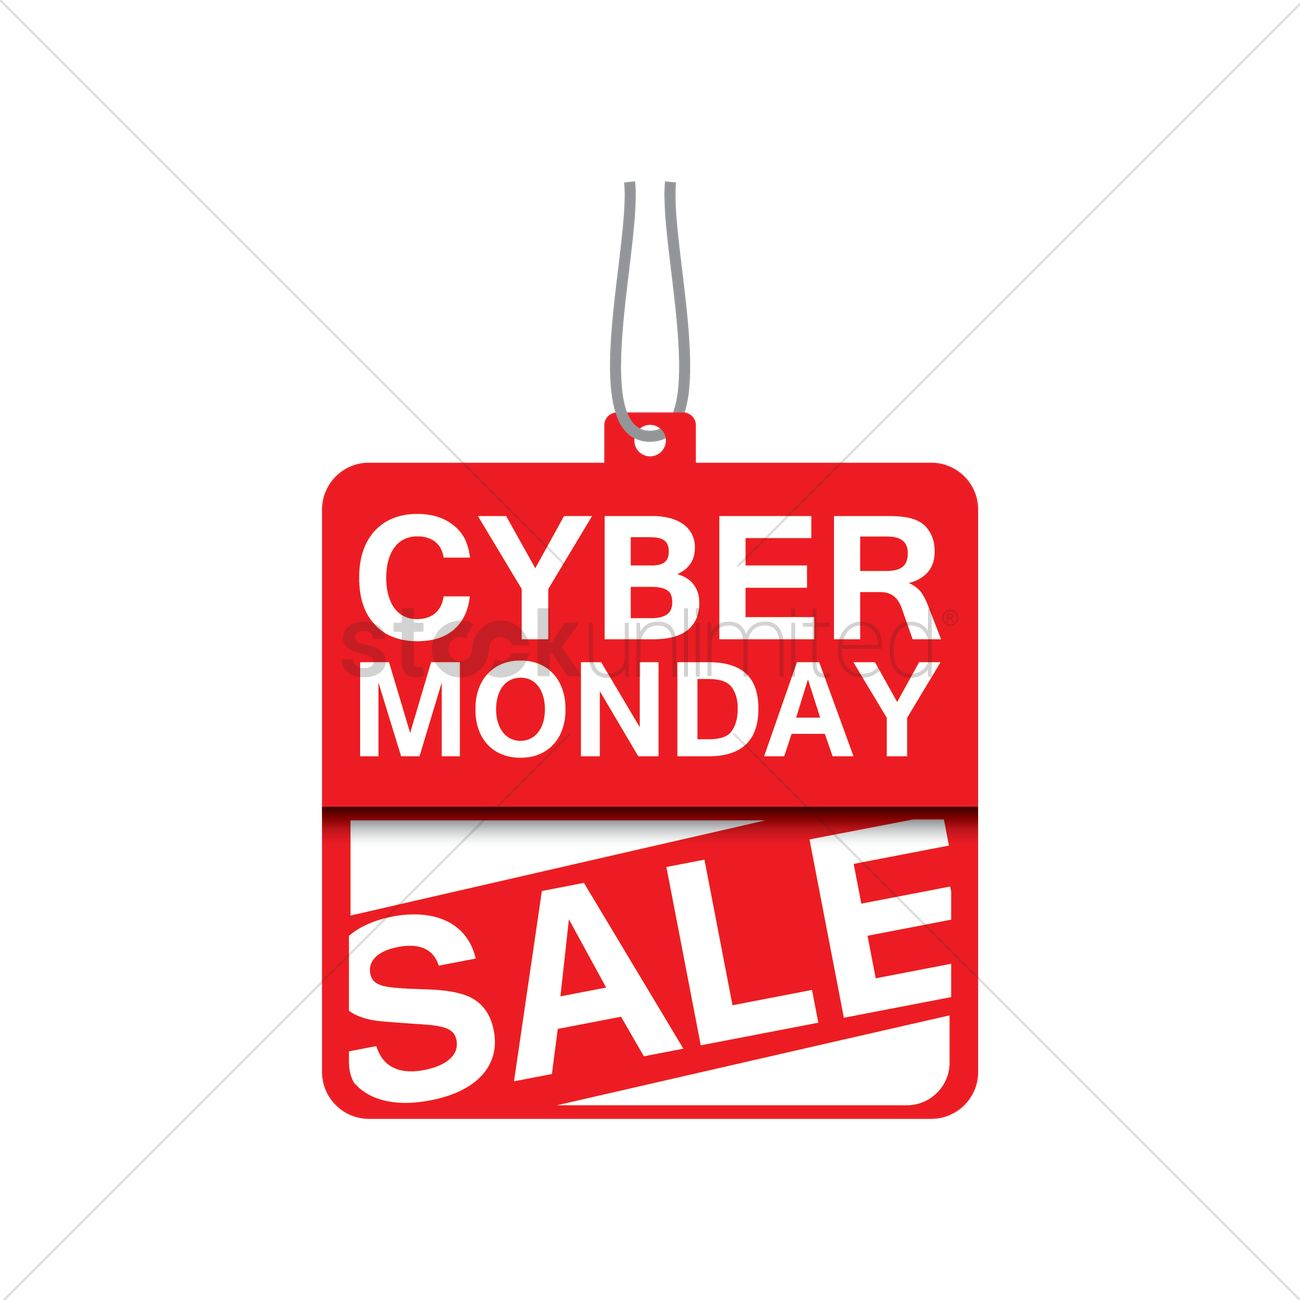 Stay tuned for great Cyber Monday deals from Target. Free shipping on orders over $35 and free same-day pick-up in store.